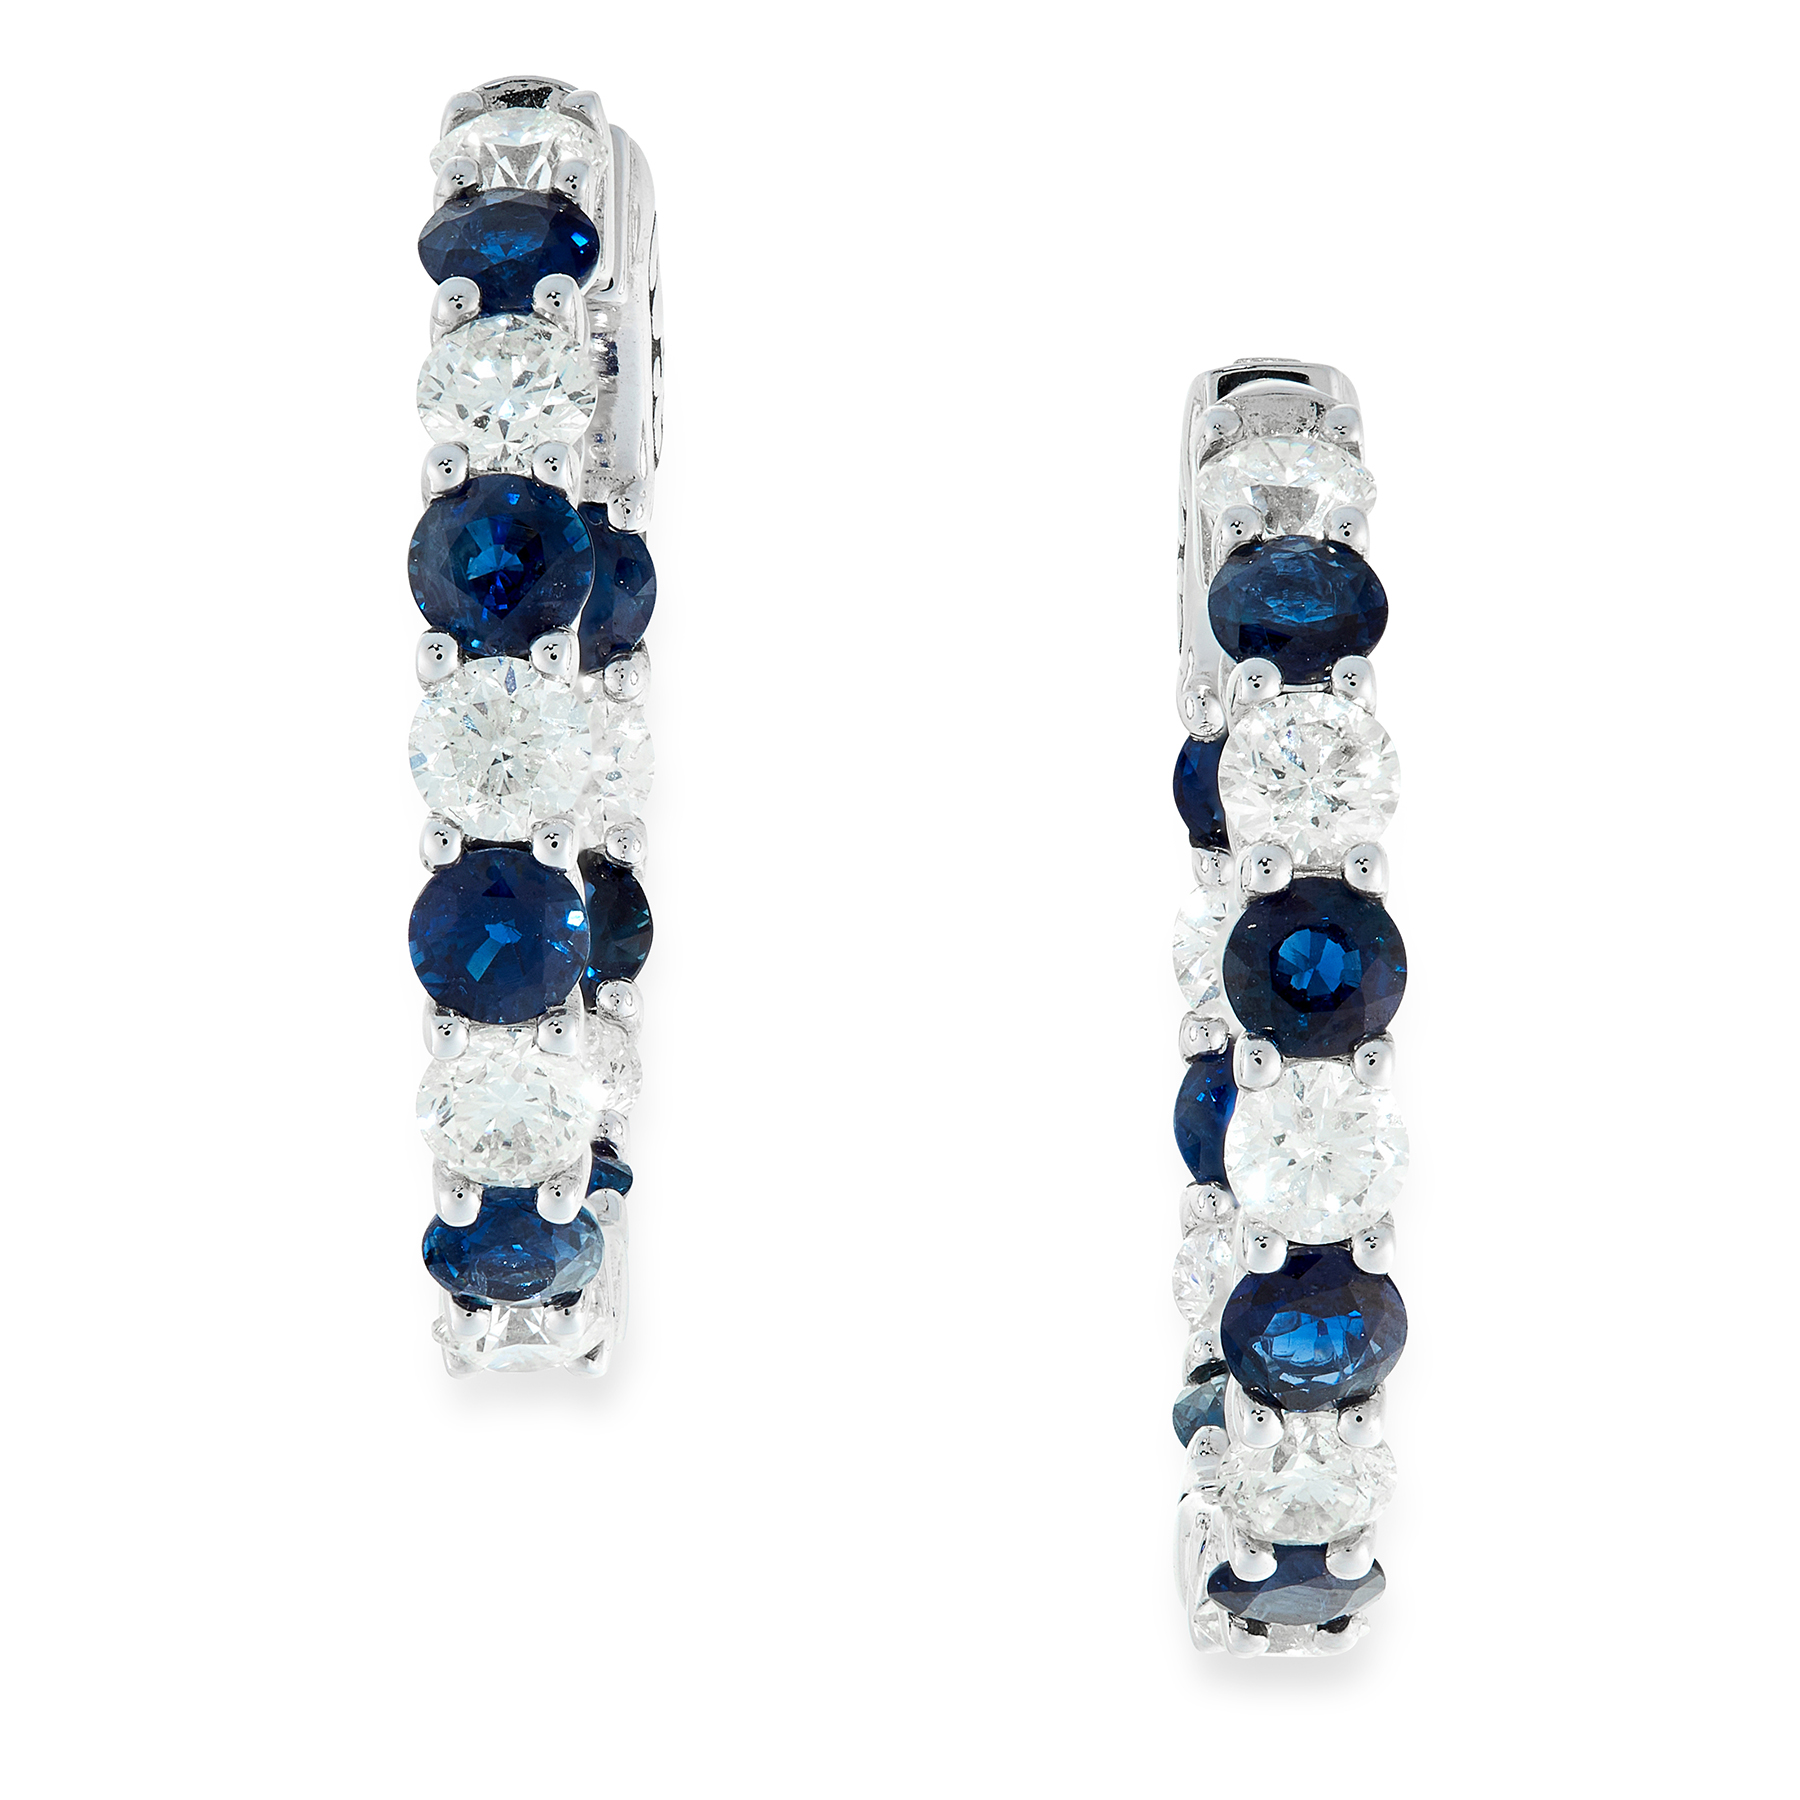 A PAIR OF SAPPHIRE AND DIAMOND HOOP EARRINGS in 18ct white gold, set with alternating round cut